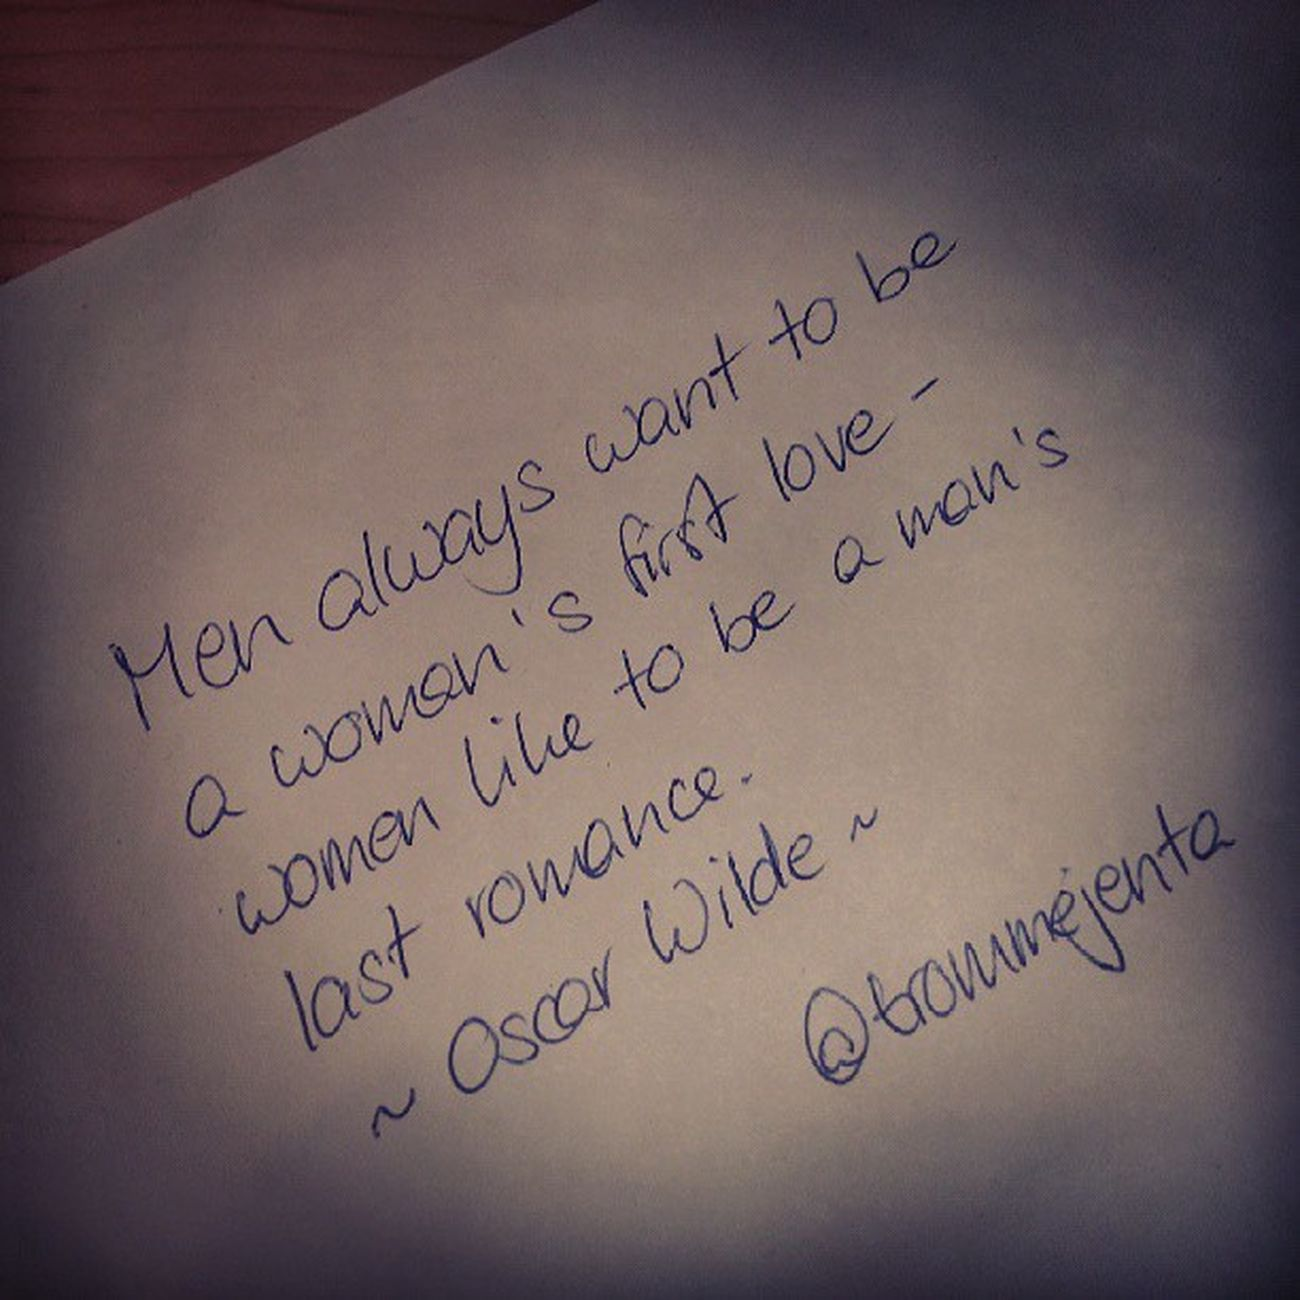 #handschrift #oscarwilde #quote #handwriting Quote Handwriting  Handschrift Oscarwilde